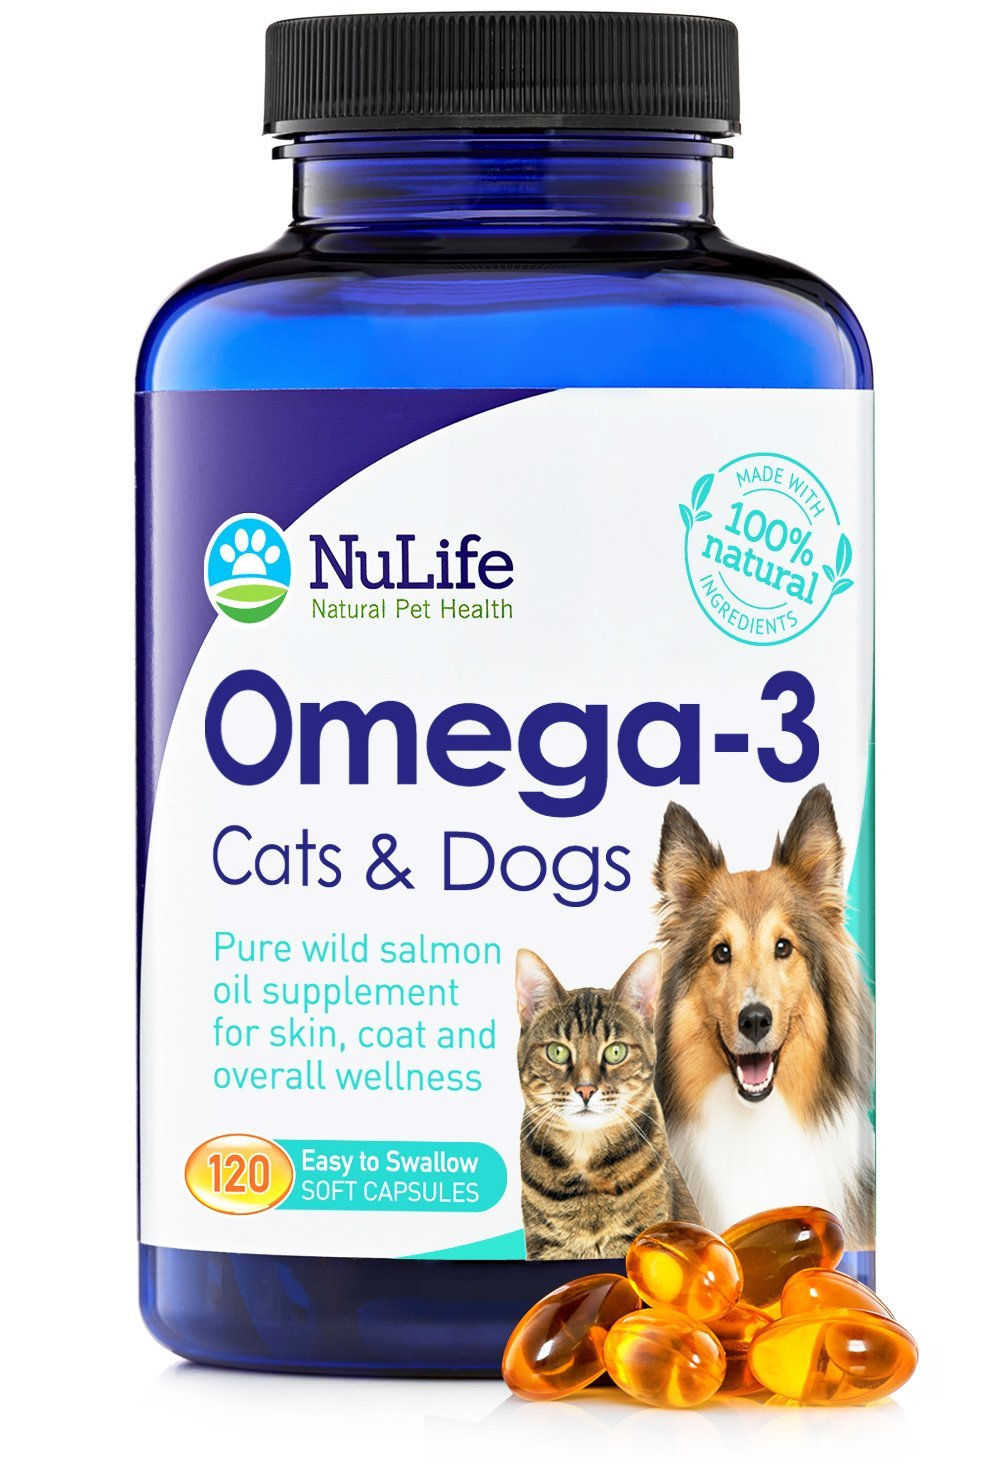 Pure Omega 3 Fish Oil for Dogs & Cats, Wild Caught Alaskan Salmon Oil Supplement for Pets, for Healthy Skin & Shiny Coat, Improves Shedding & Relieves Dry, Itchy Skin, 500mg, 120 Capsules by NuLife Natural Pet Health